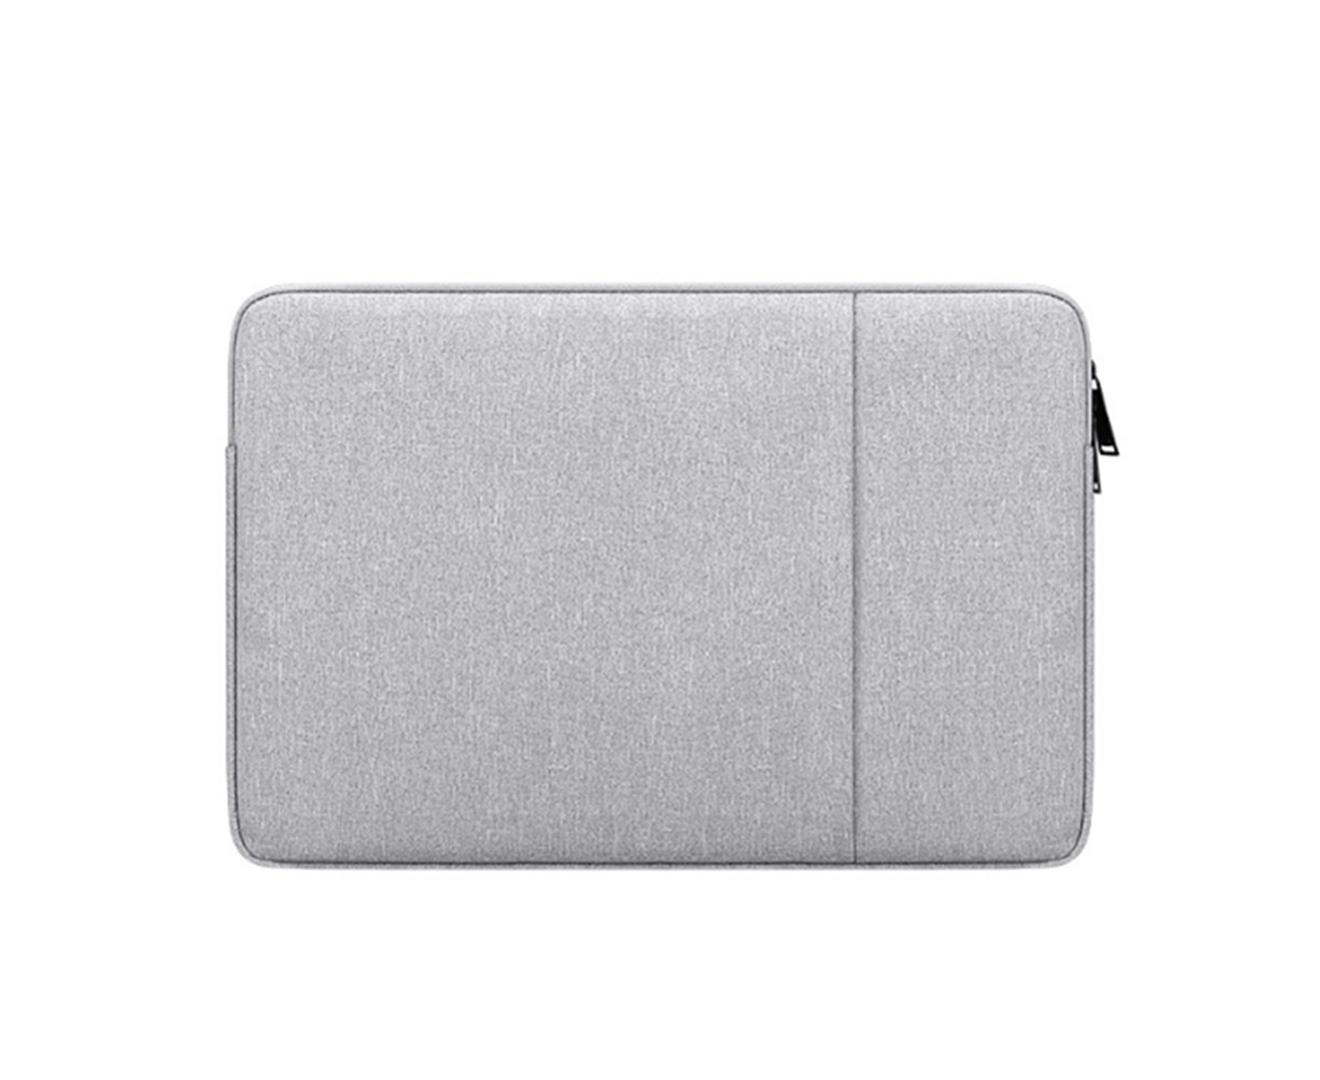 Dsport 15.6-inch Ipad Protective Cover Shell Notebook Tablet Computer Waterproof Liner Bag Outer Bag-2#-Grey